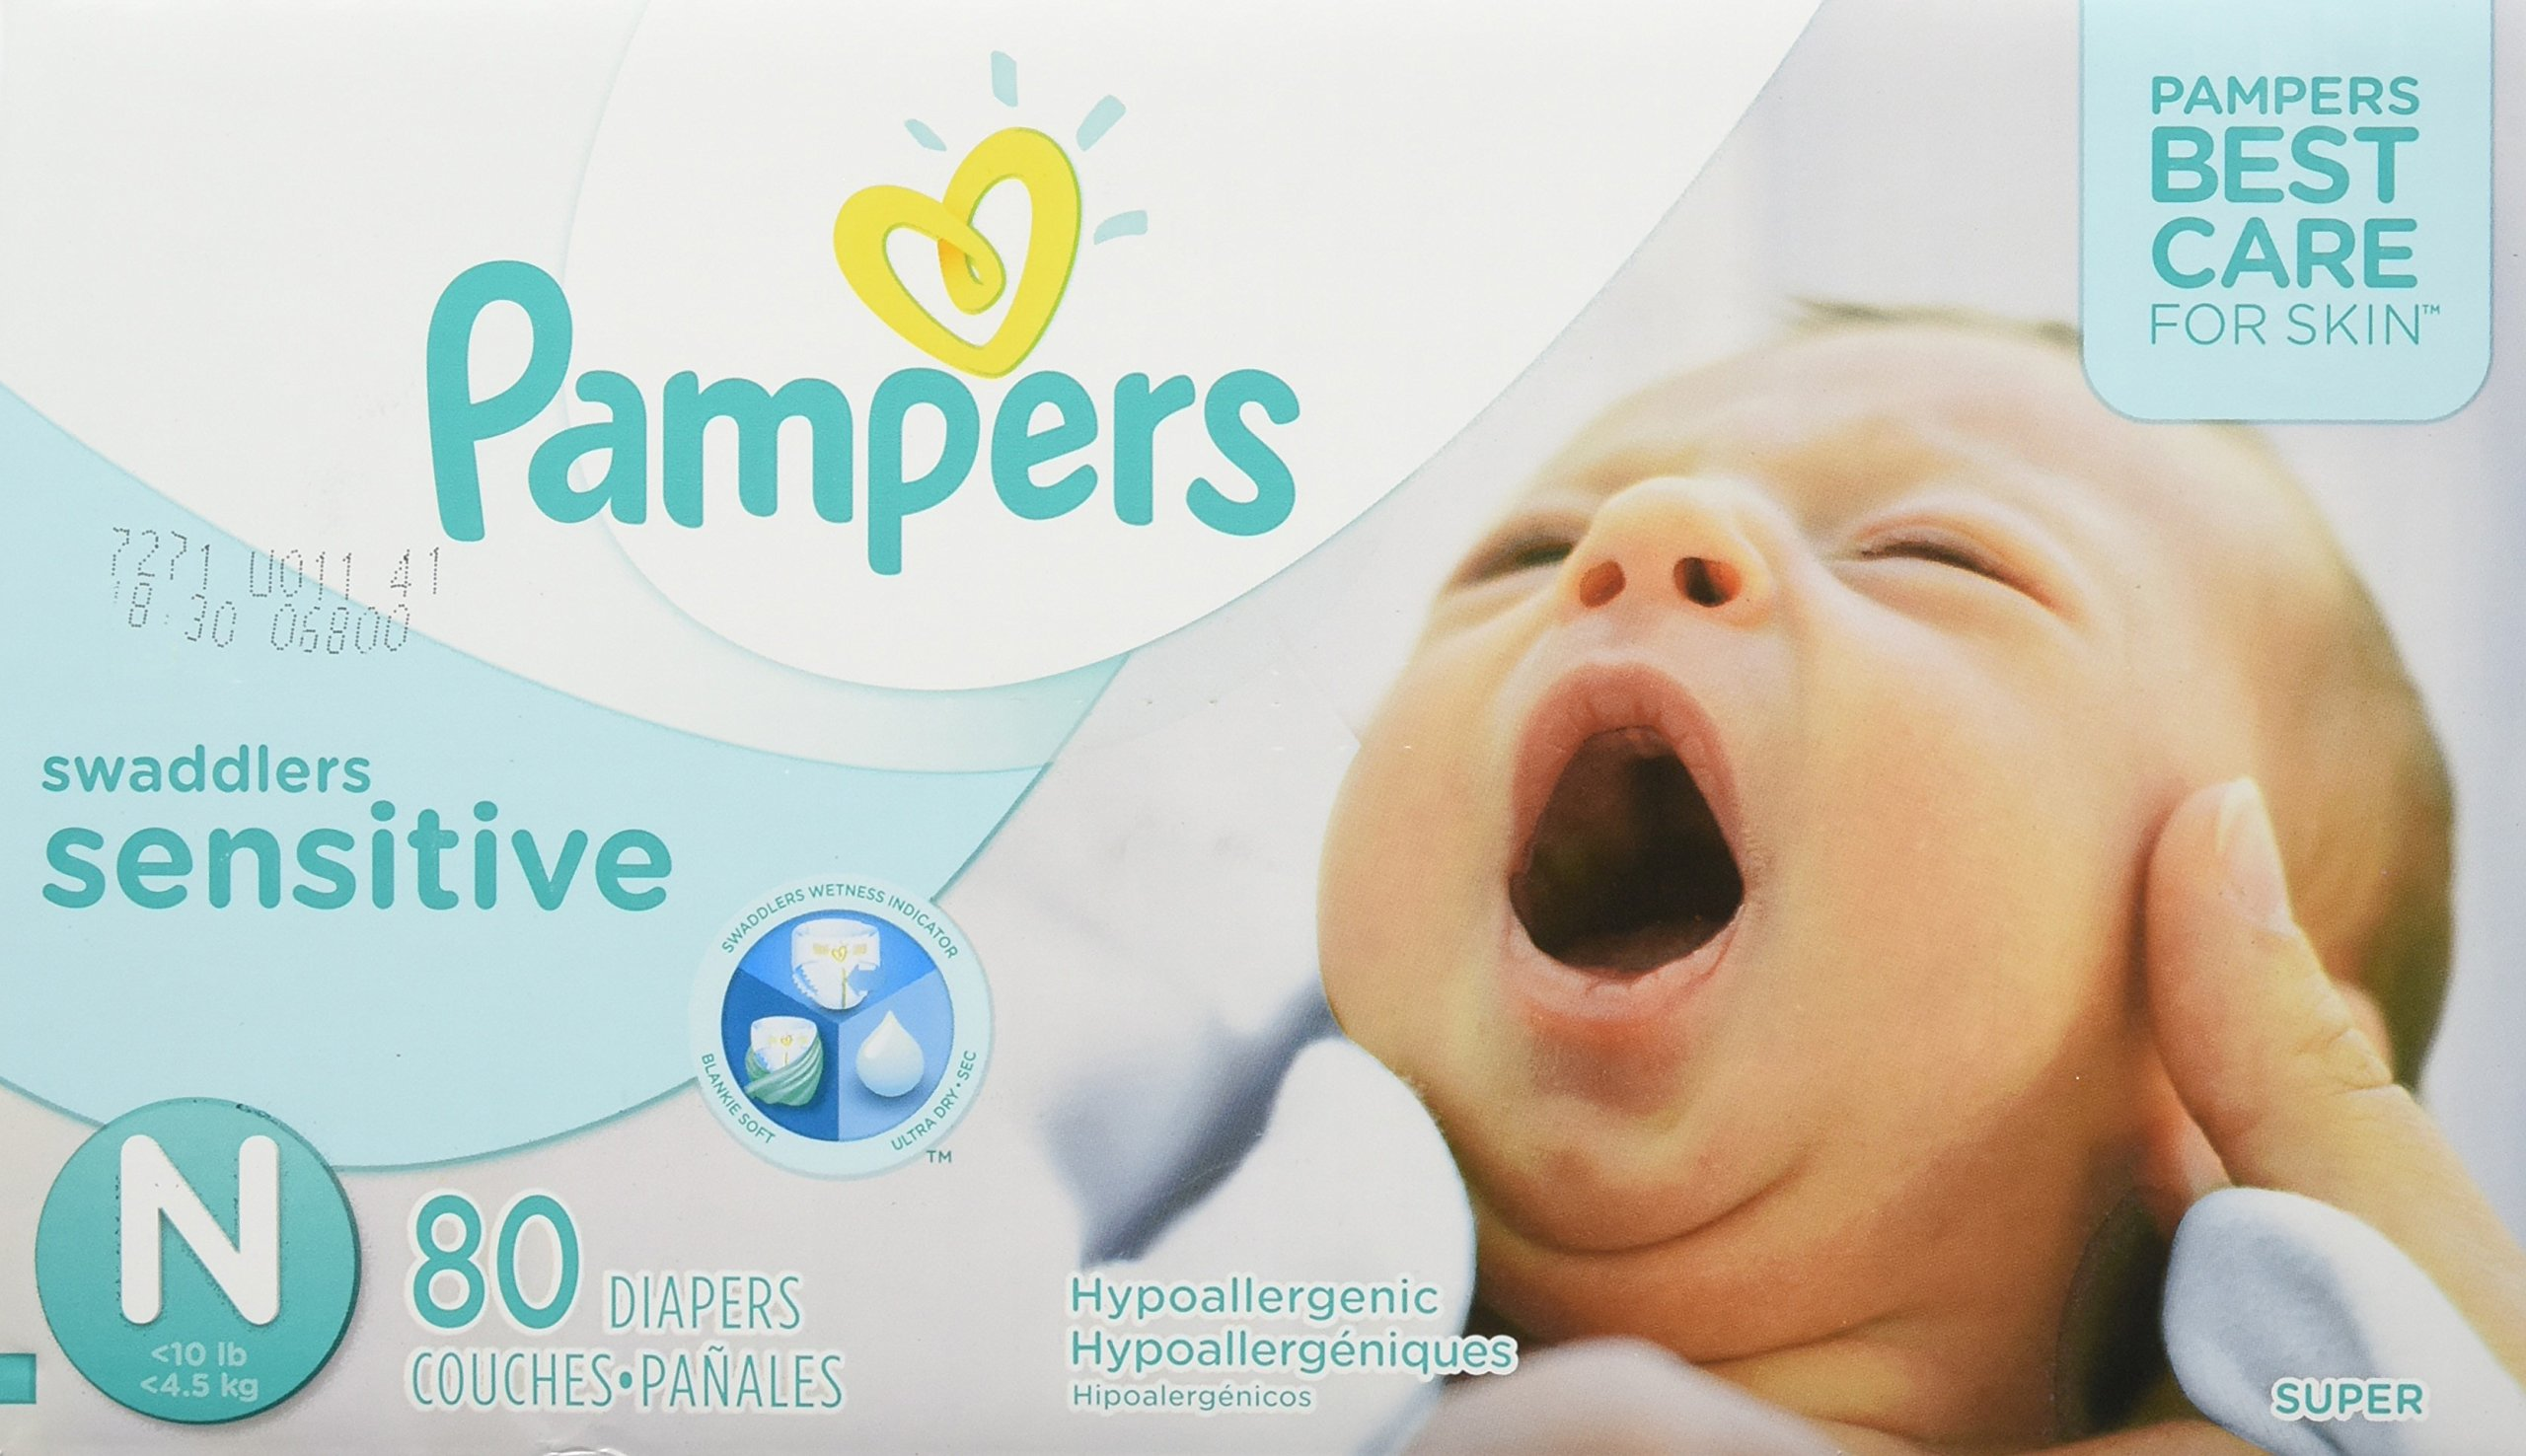 Pampers Swaddlers Sensitive Disposable Diapers  Newborn Size 0 (> 10 lb), 80 Count, SUPER